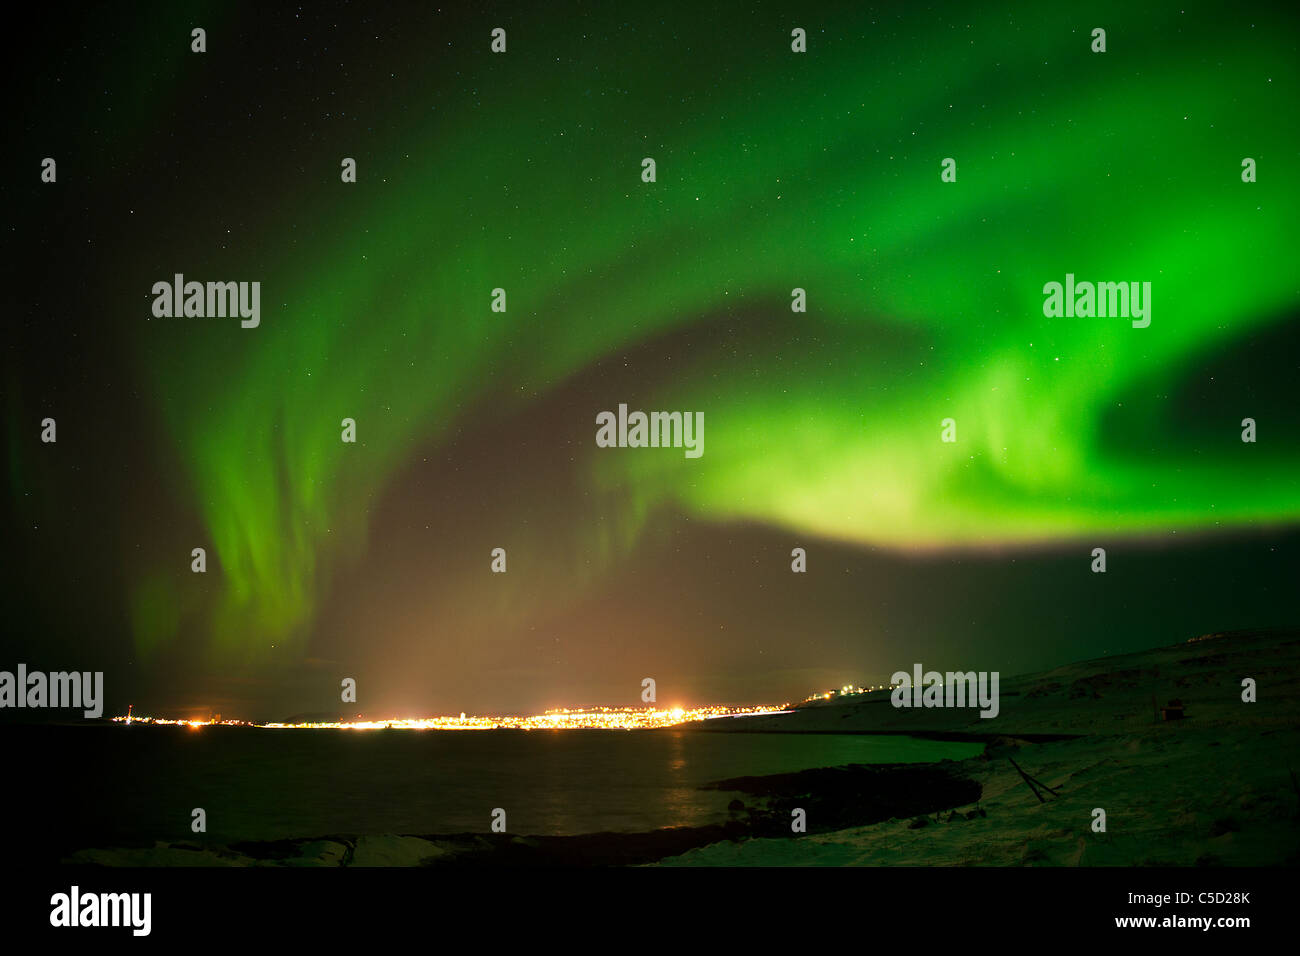 Aurora Borealis or Northern Lights over landscape in Norway - Stock Image